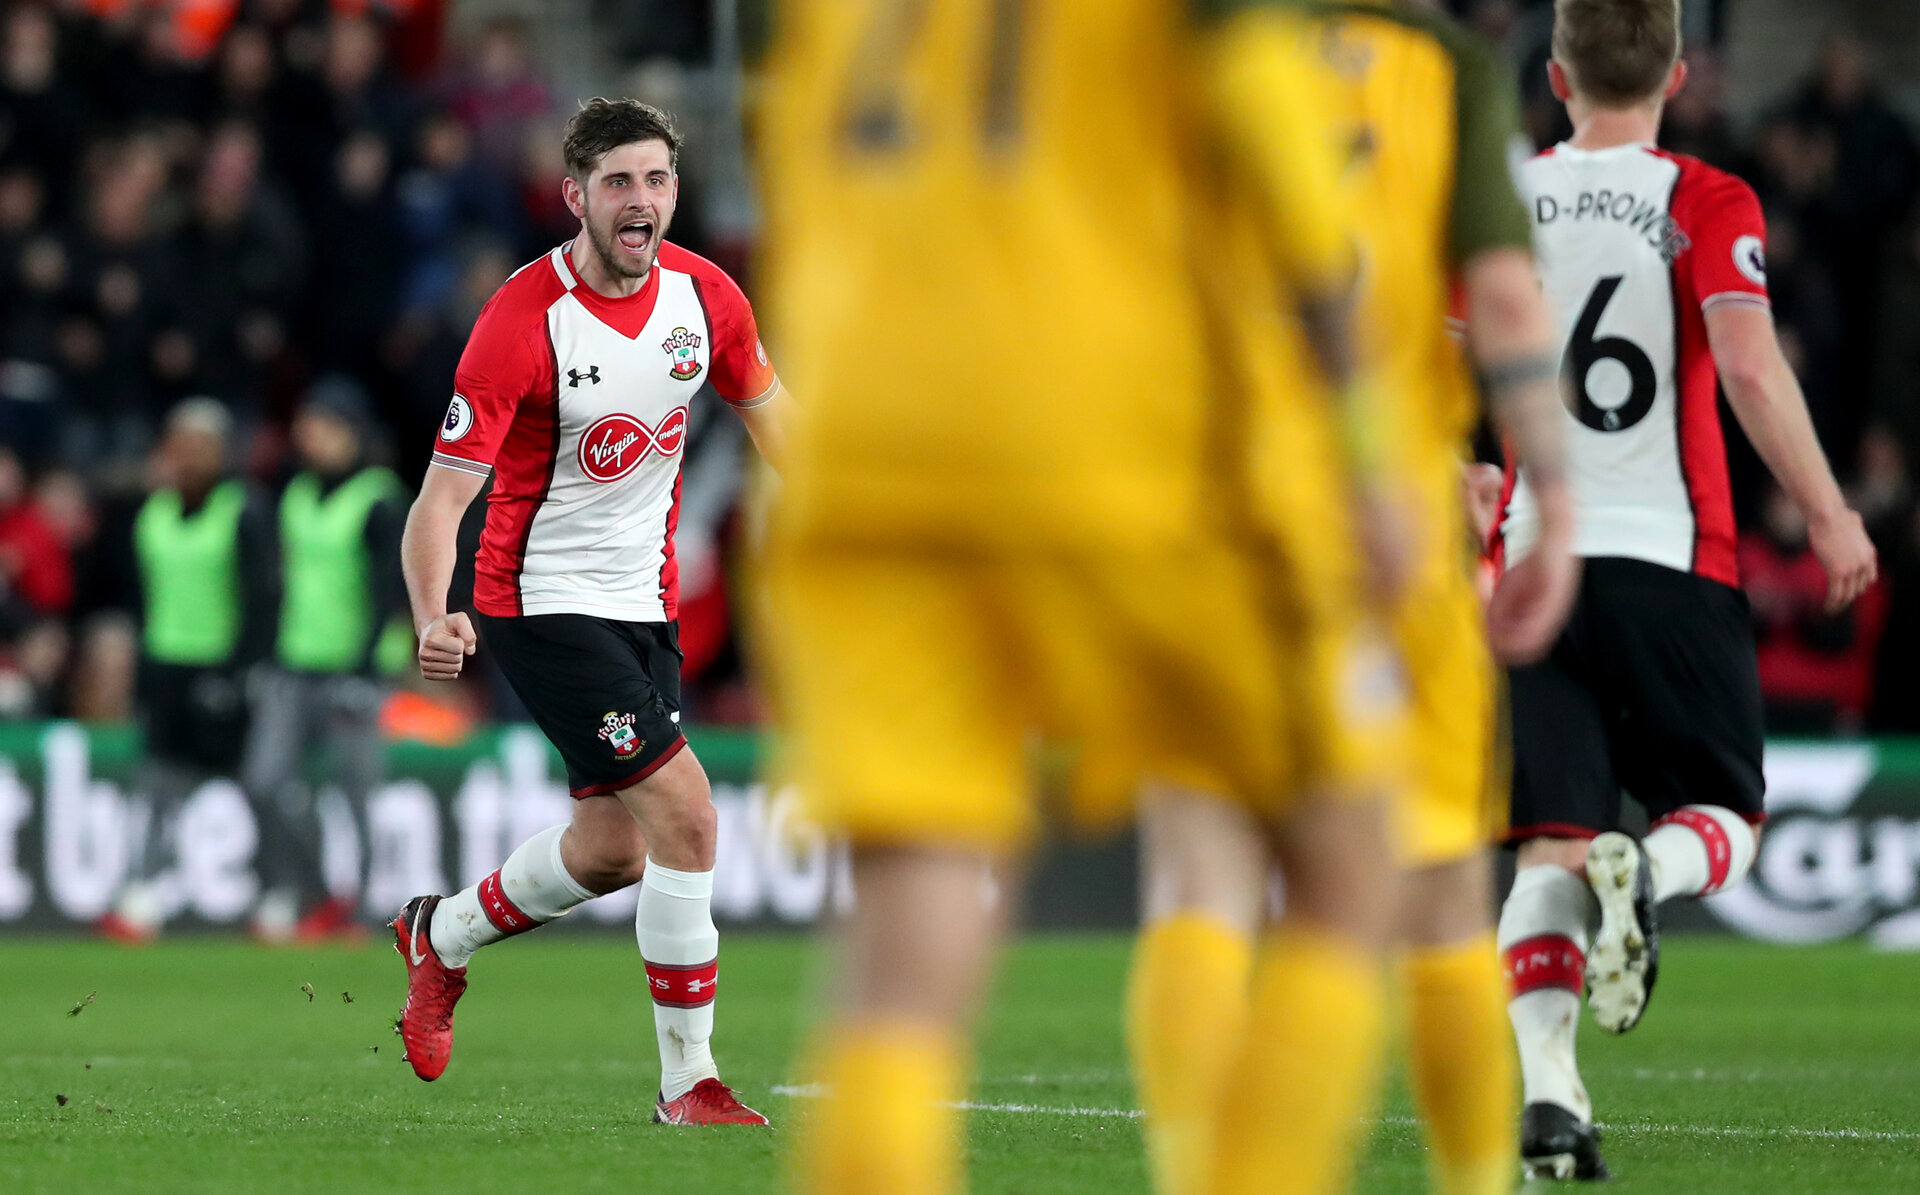 SOUTHAMPTON, ENGLAND - JANUARY 31: Jack Stephens of Southampton FC celebrates after equalising during the Premier League match between Southampton and Brighton and Hove Albion at St Mary's Stadium on January 31, 2018 in Southampton, England. (Photo by Matt Watson/Southampton FC via Getty Images)